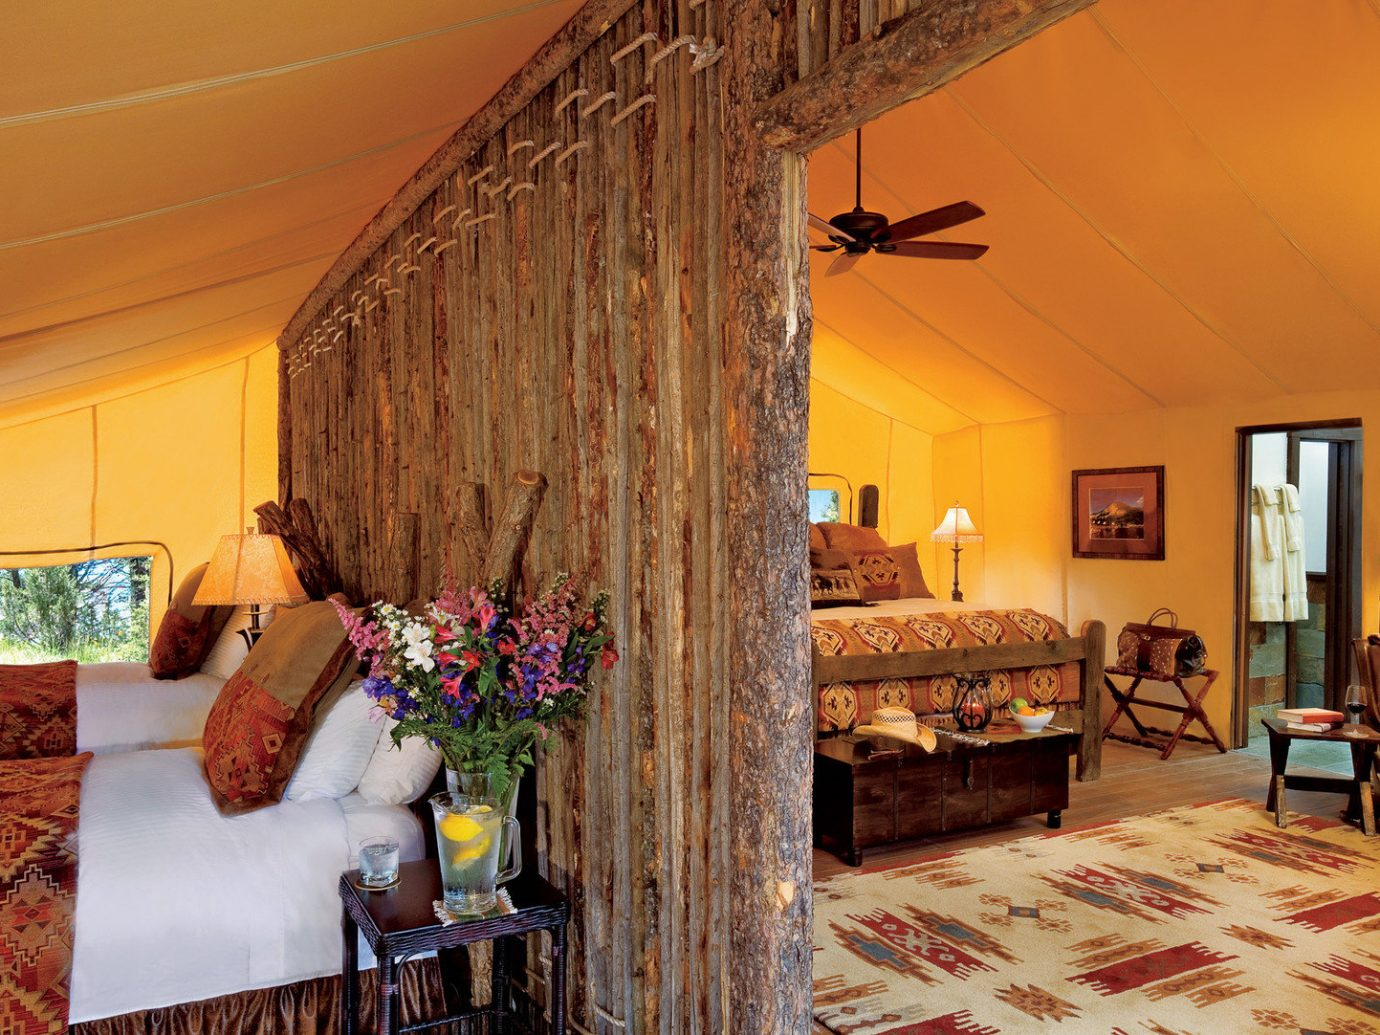 Glamping Hotels Luxury Travel Montana Outdoors + Adventure Trip Ideas indoor Living room wall floor sofa property ceiling estate furniture house living room cottage Villa home farmhouse decorated interior design real estate Bedroom mansion Suite